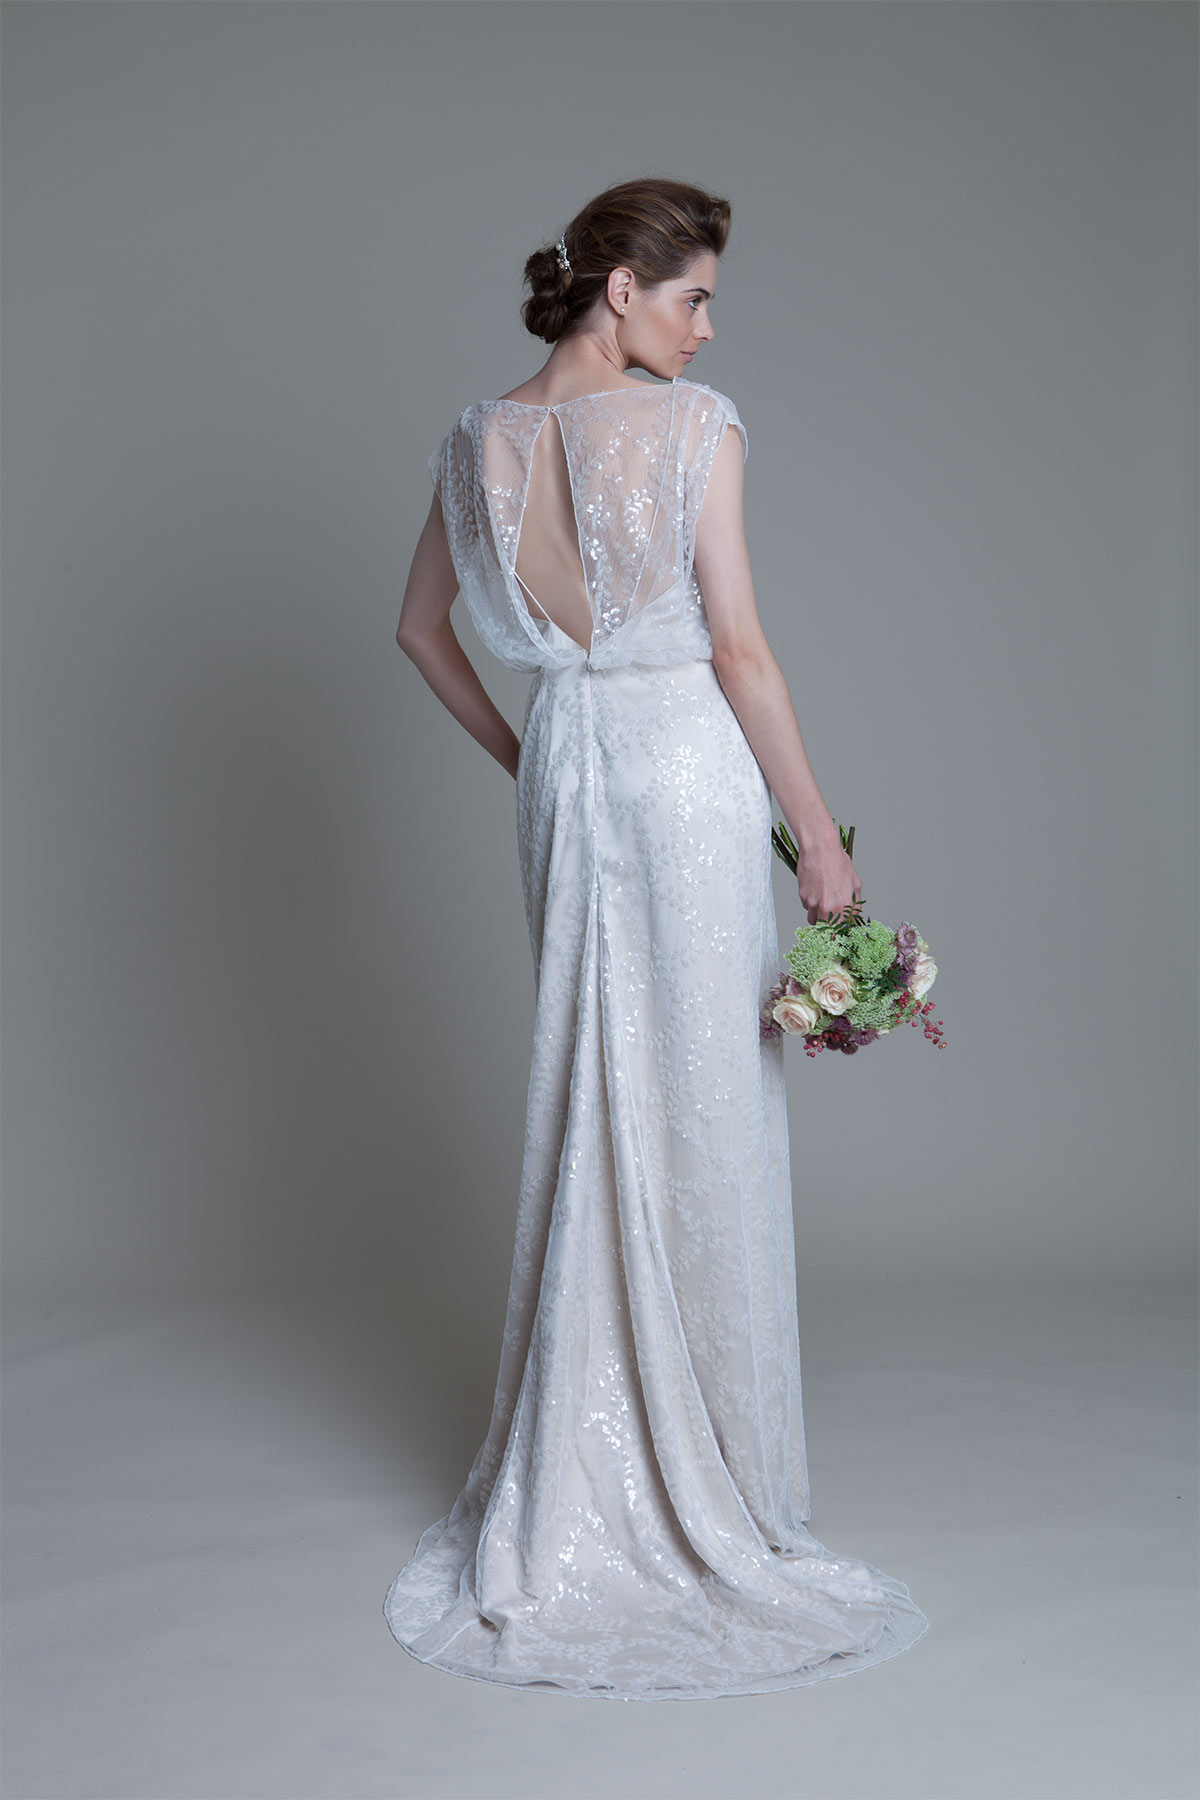 Back view of the Lydia sequin ivory bridal wedding dress by Halfpenny London